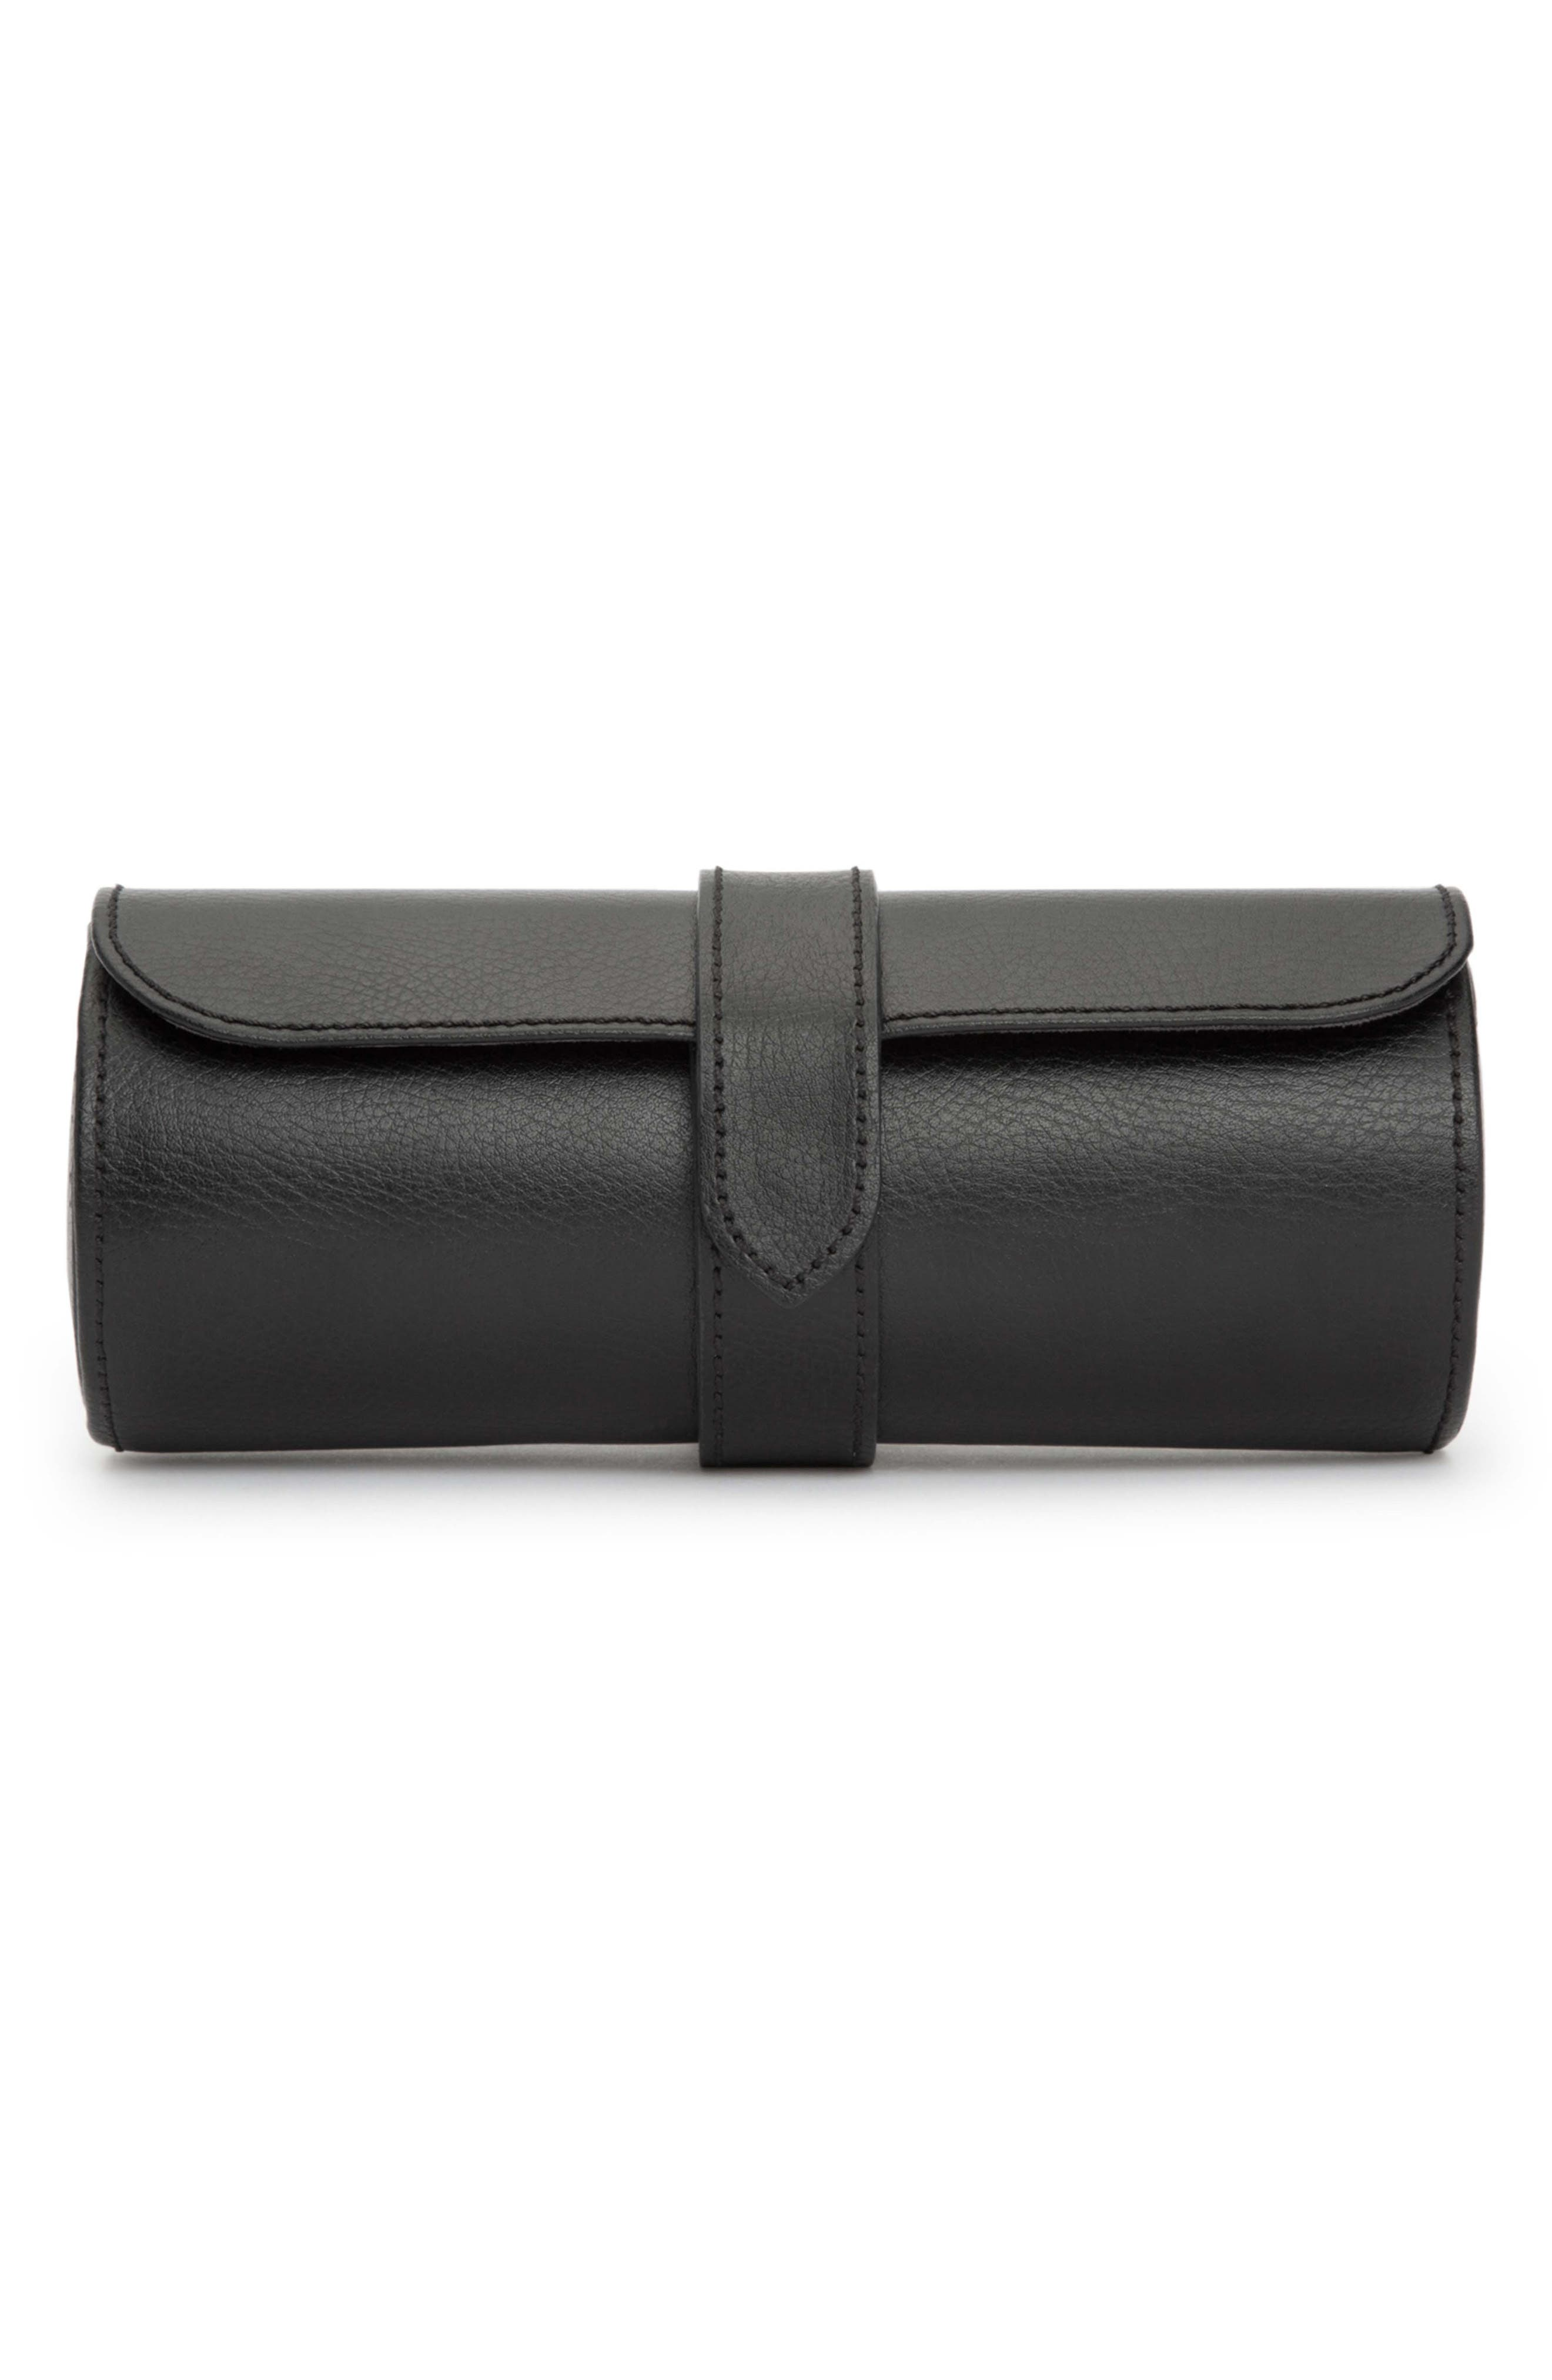 Black Leather Watch Roll,                             Main thumbnail 1, color,                             BLACK